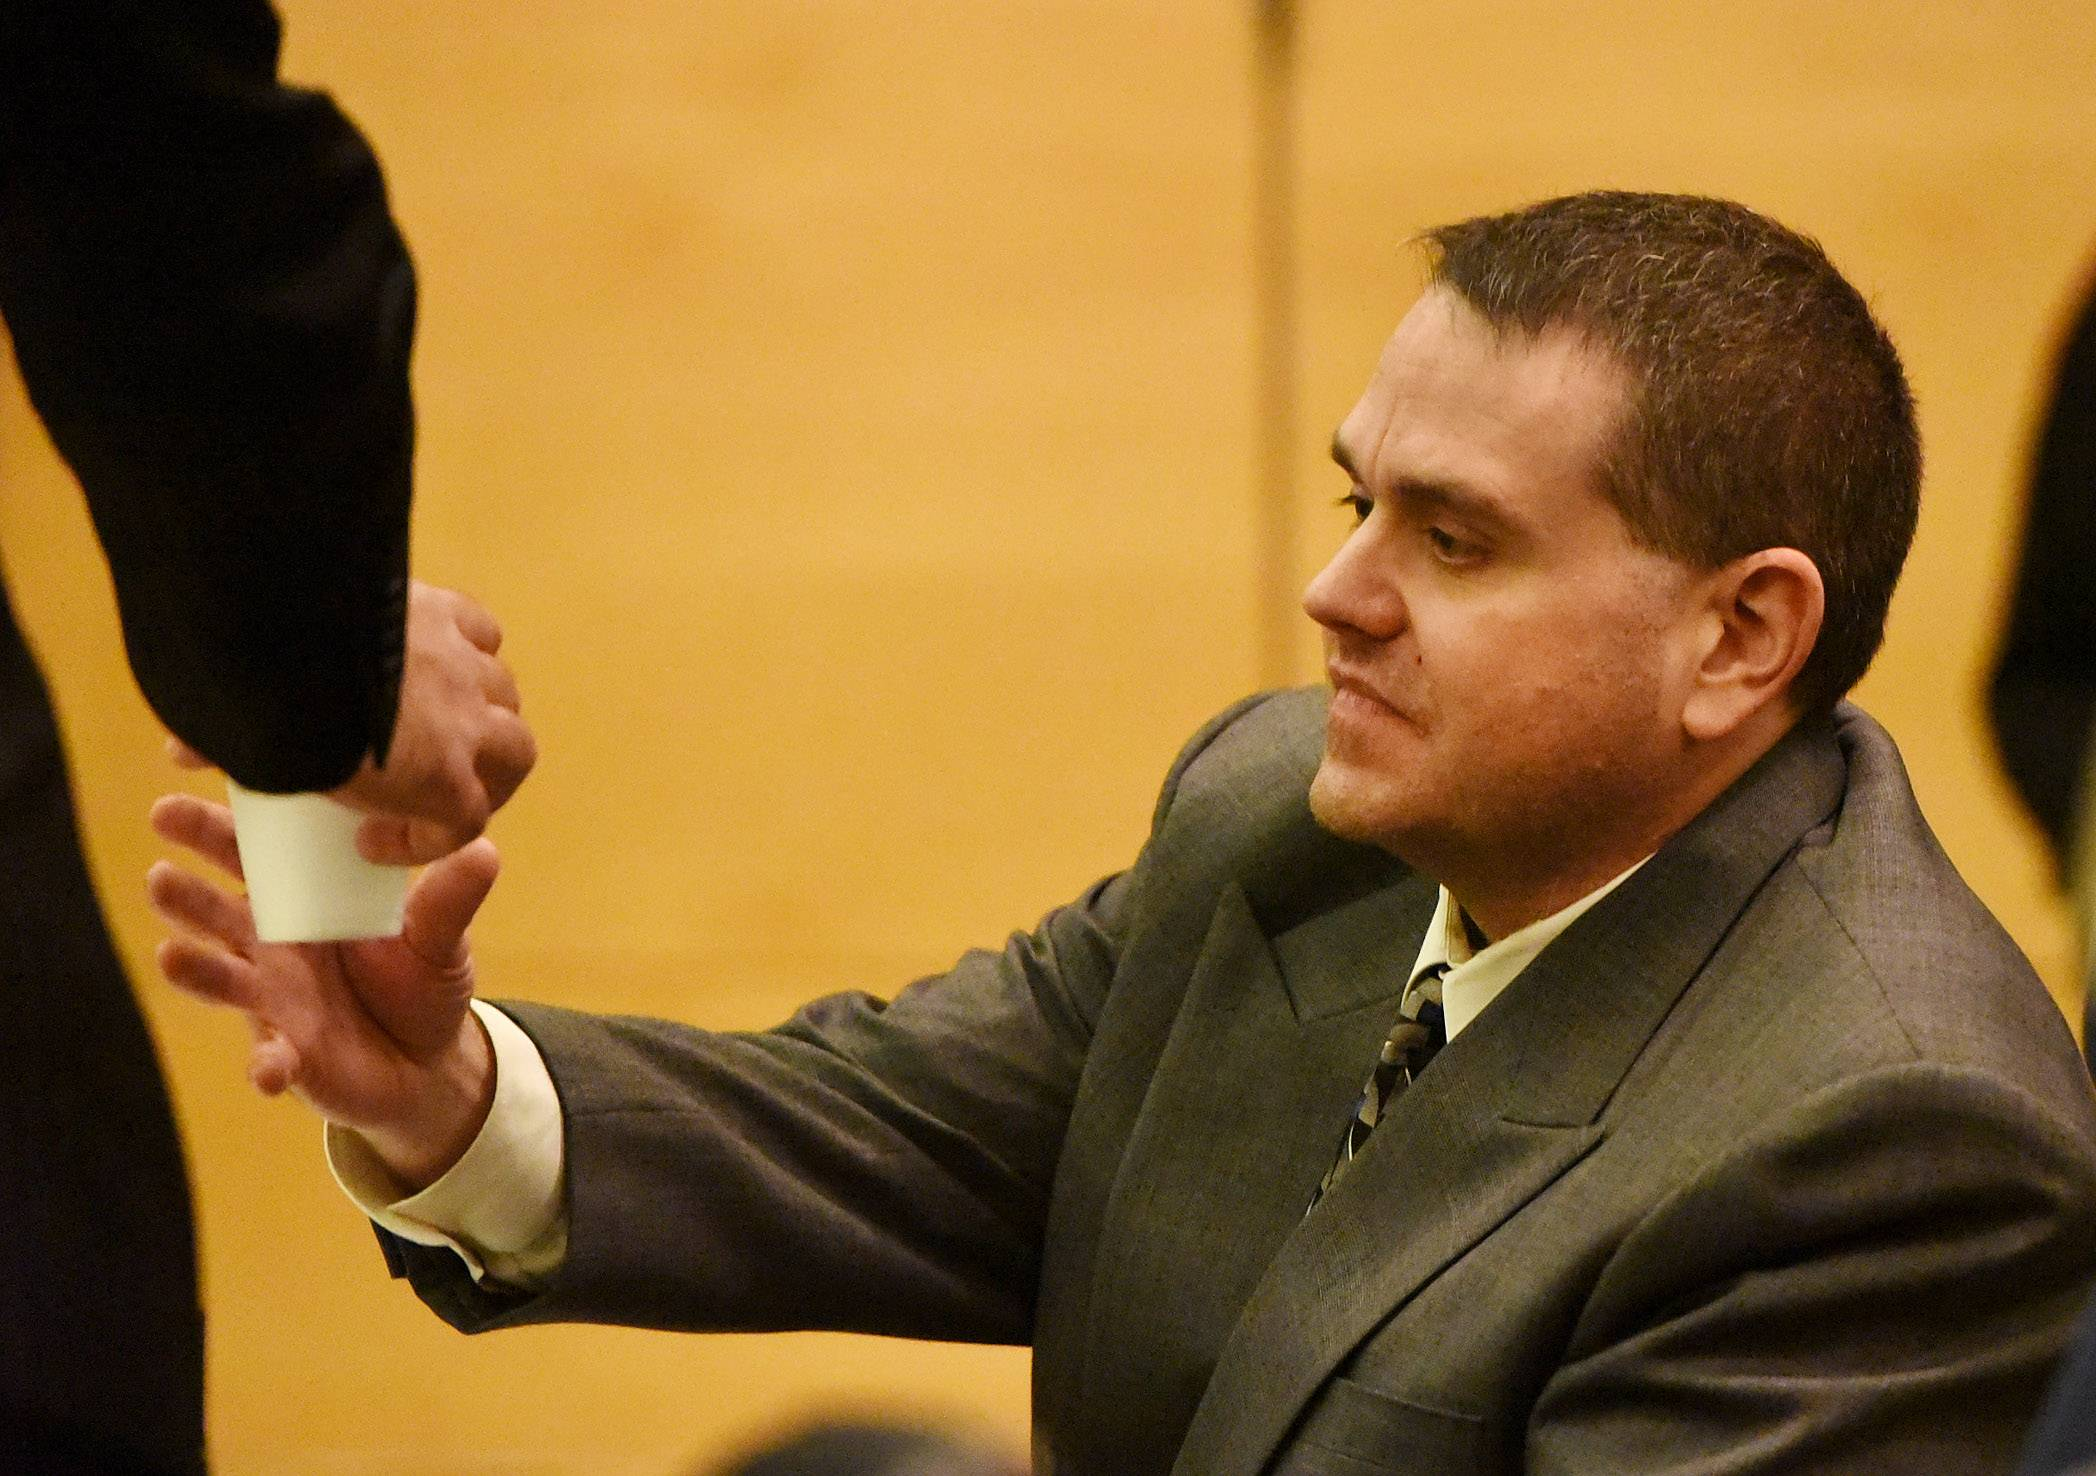 Richard Schmelzer, shown in court Tuesday, is accused of murdering his grandmother in East Dundee for her inheritance.